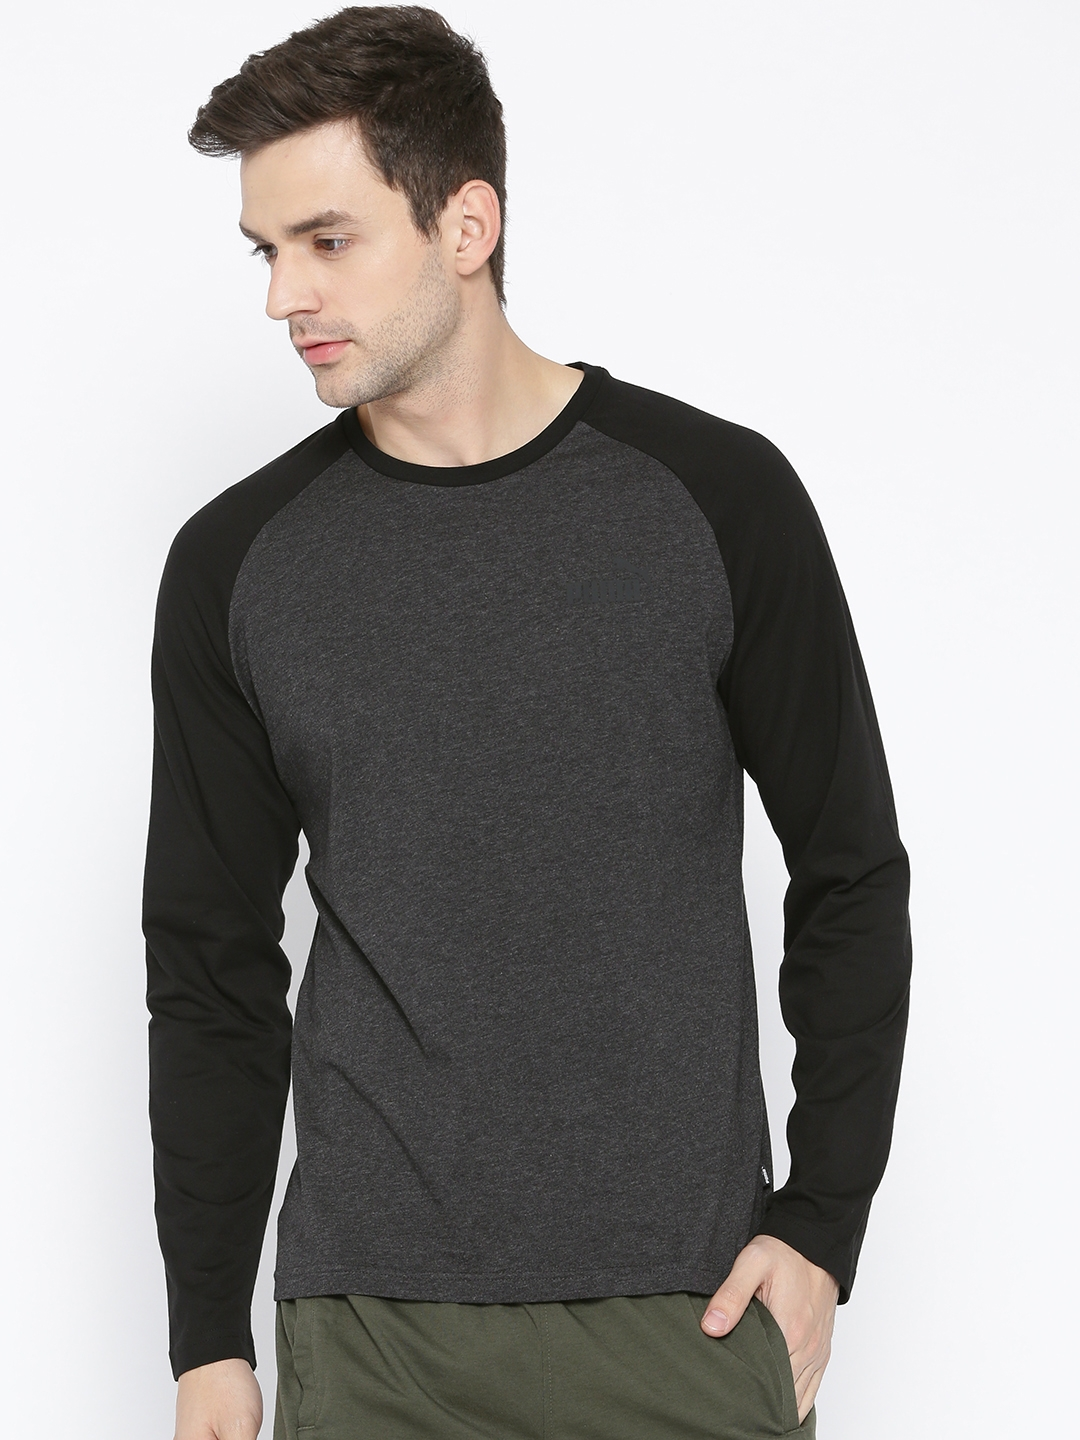 abe18acd0a8 Buy Puma Men Charcoal Solid Round Neck T Shirt - Tshirts for Men ...